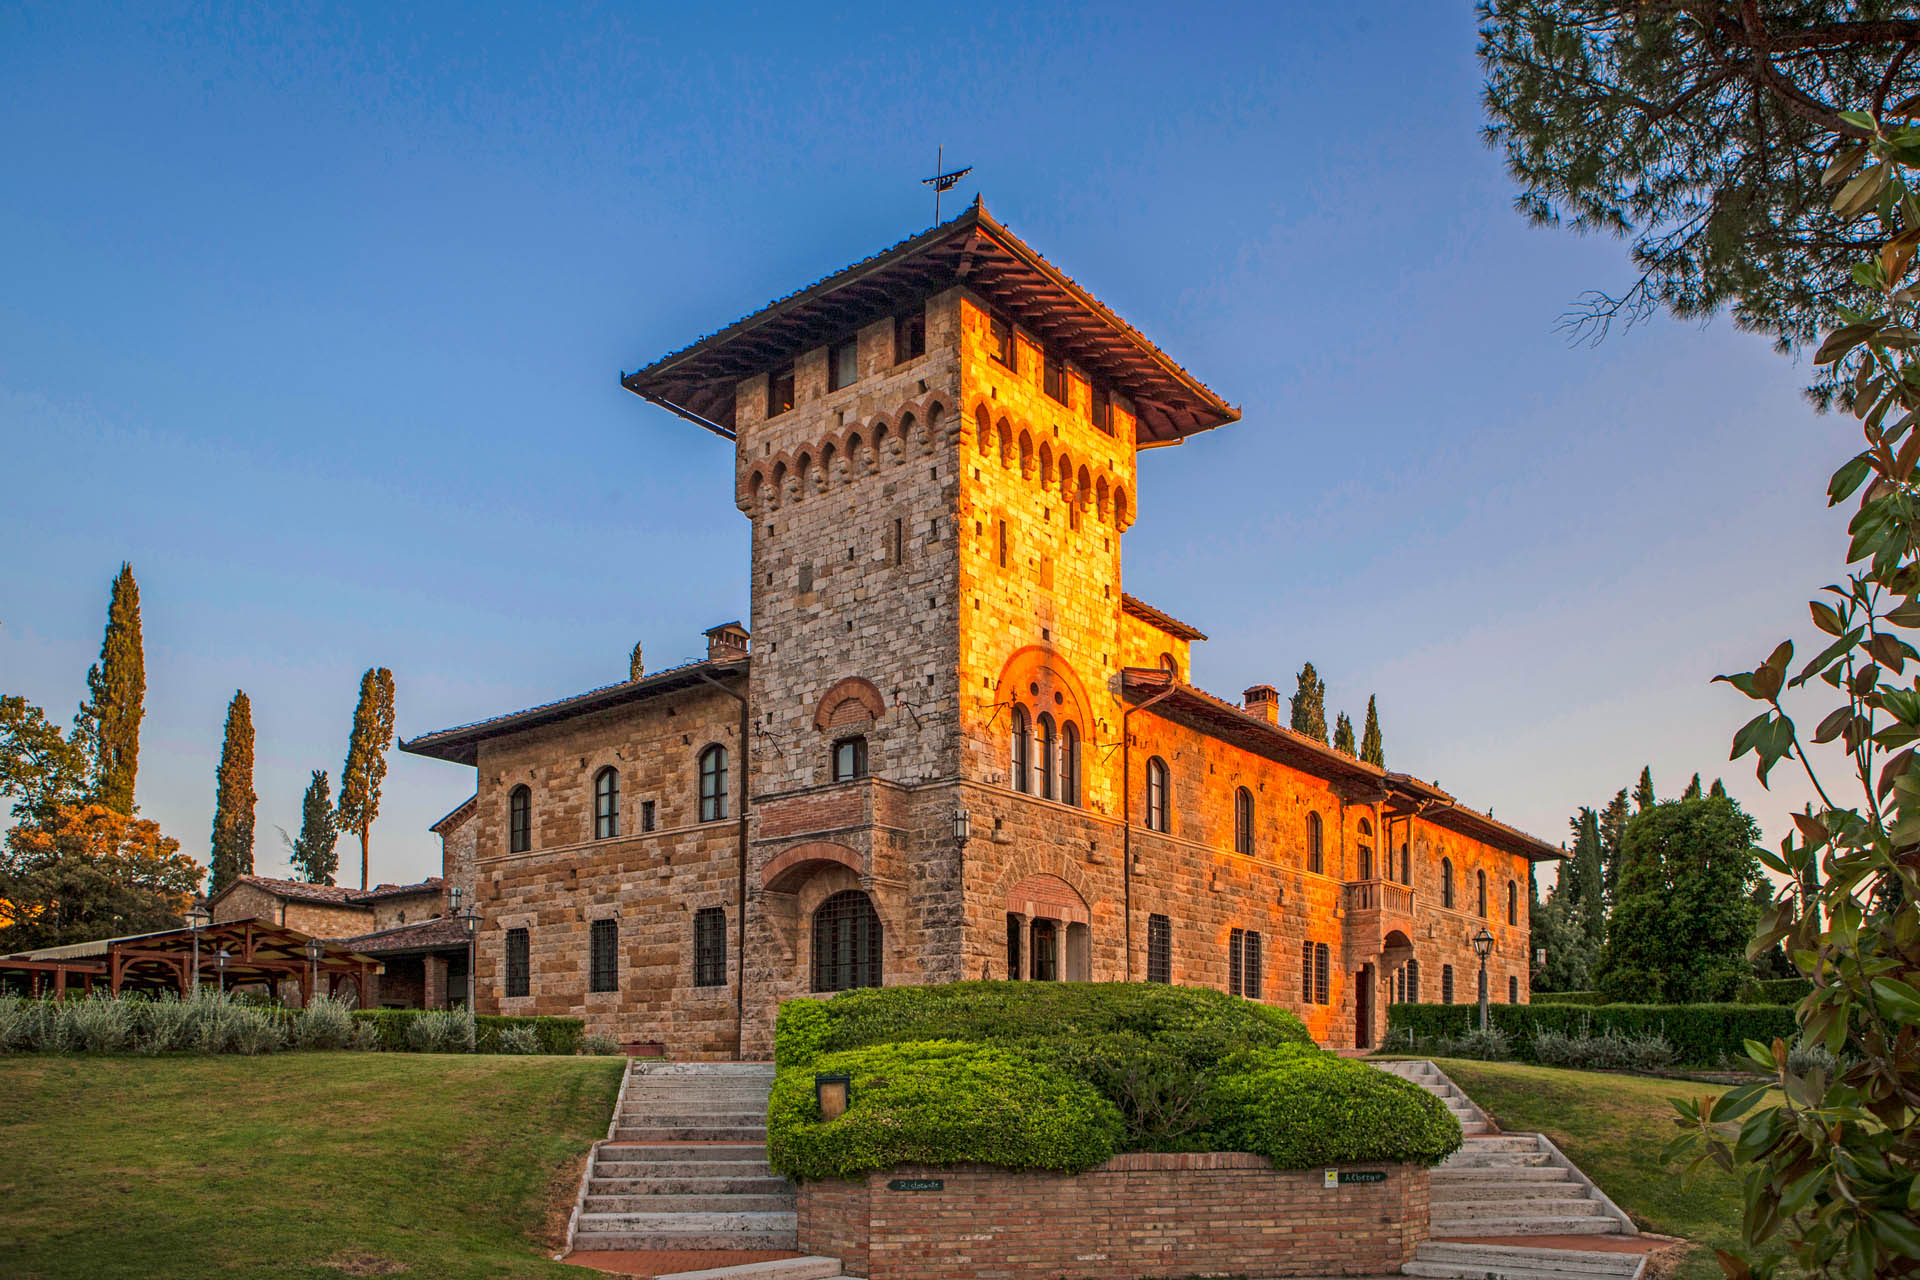 LUXURY VILLA FOR SALE IN SAN GIMIGNANO, VAL D'ELSA